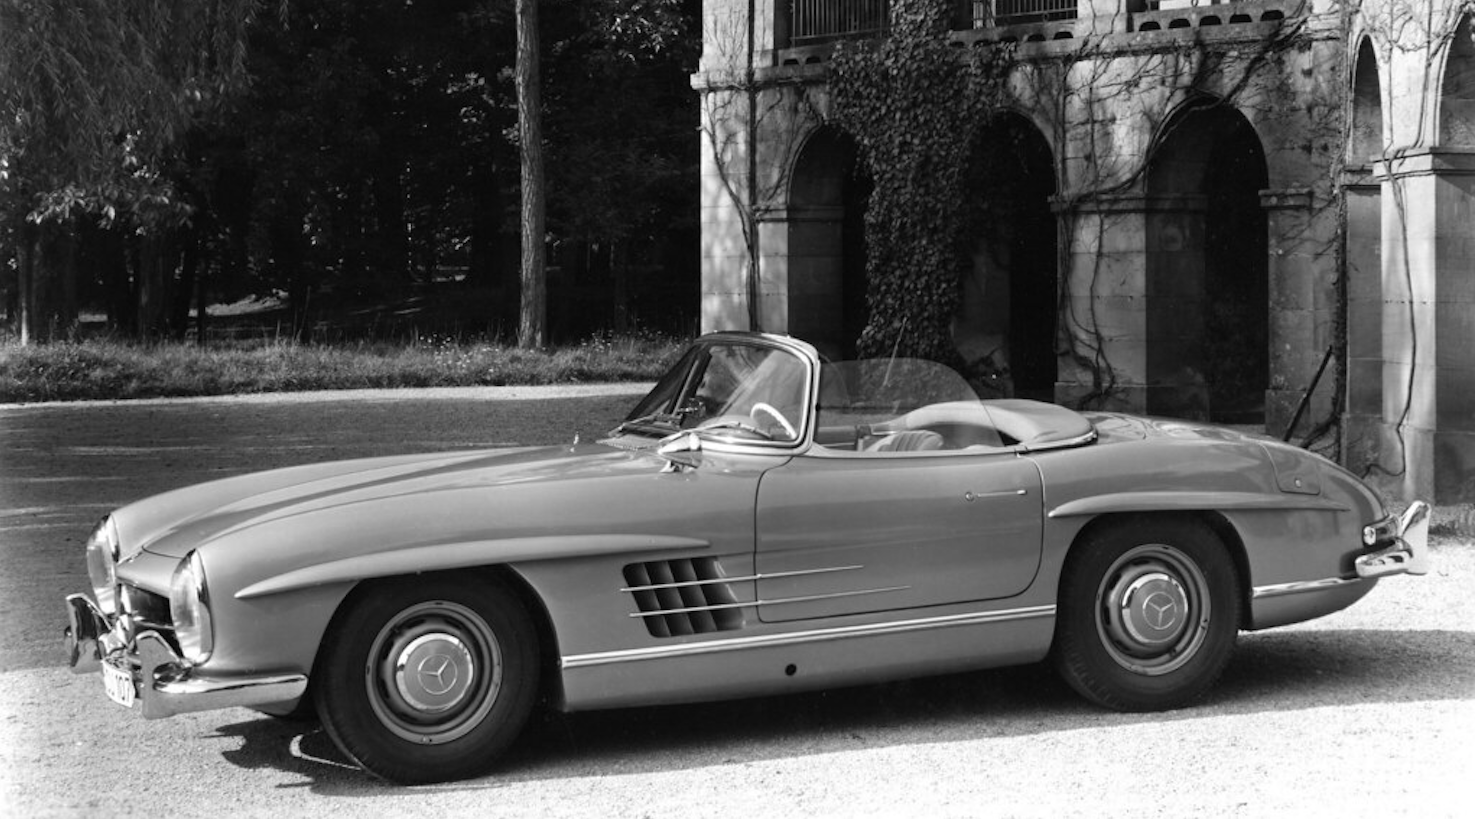 Mercedes-Benz 300SL Roadster 1957 For Sale (picture 1 of 1)